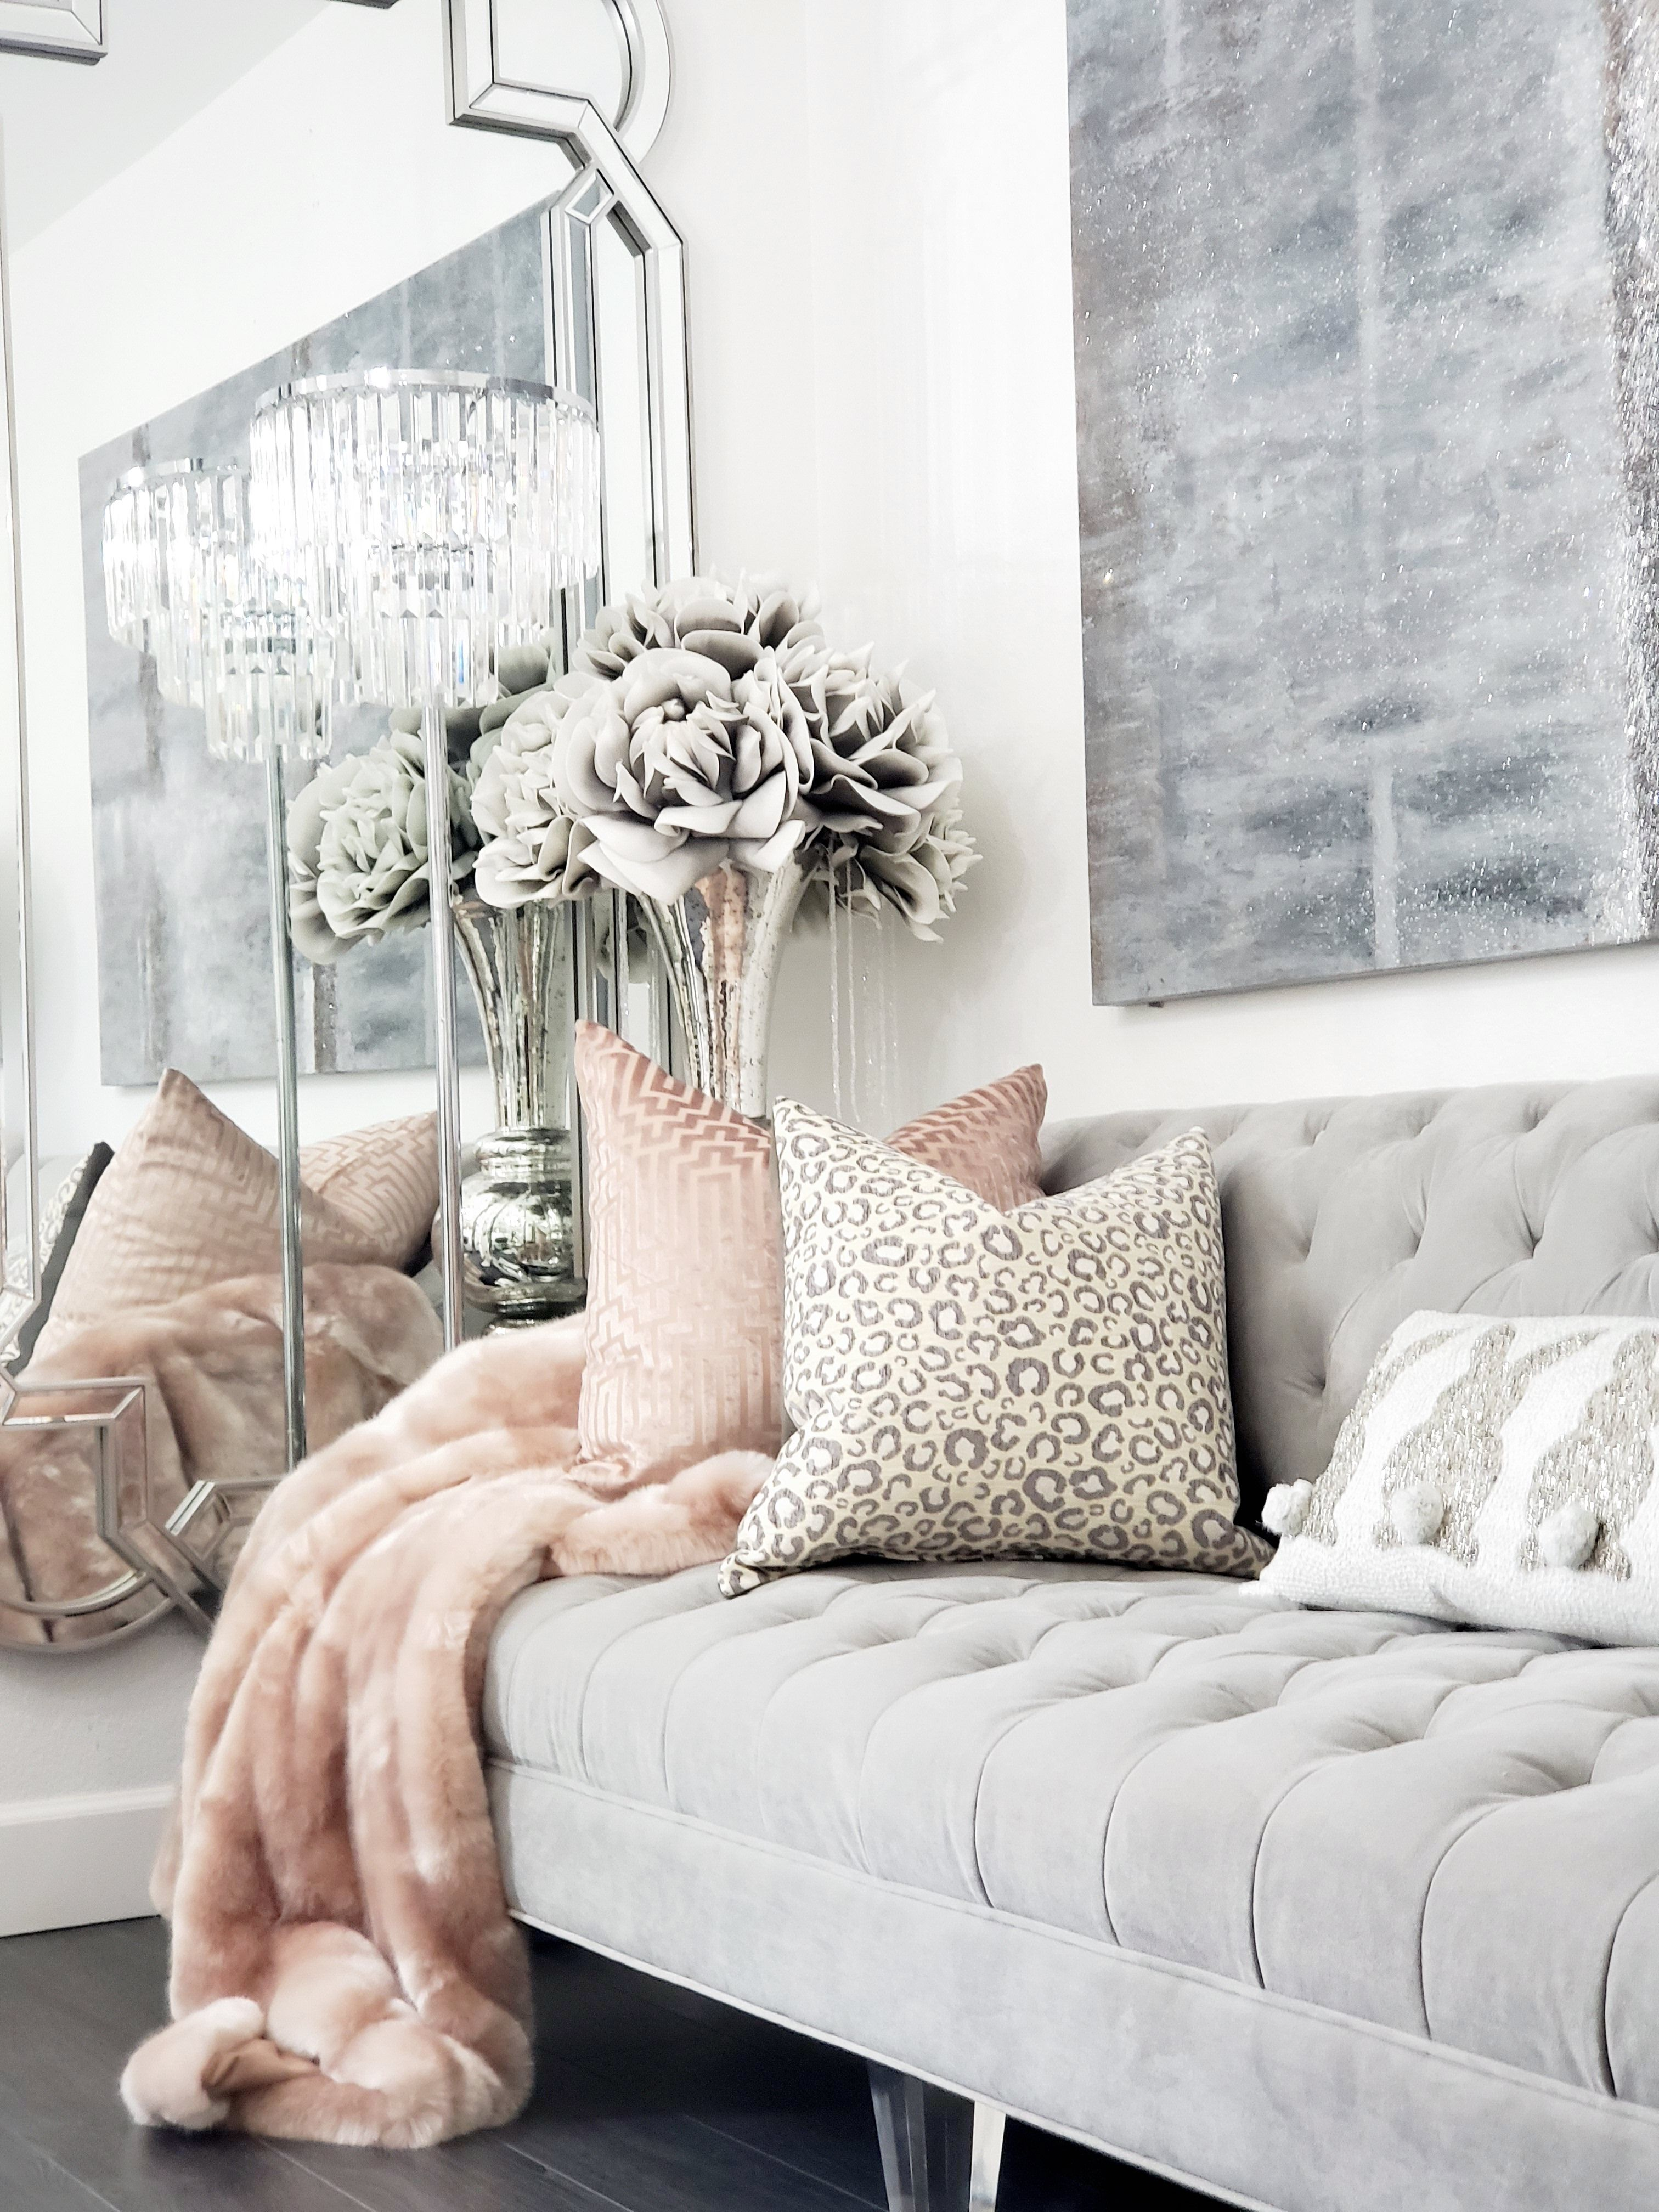 Small Space Glam Decor In 2020 Glam Living Room Decor Small Living Room Decor Glam Living Room #small #glam #living #room #ideas